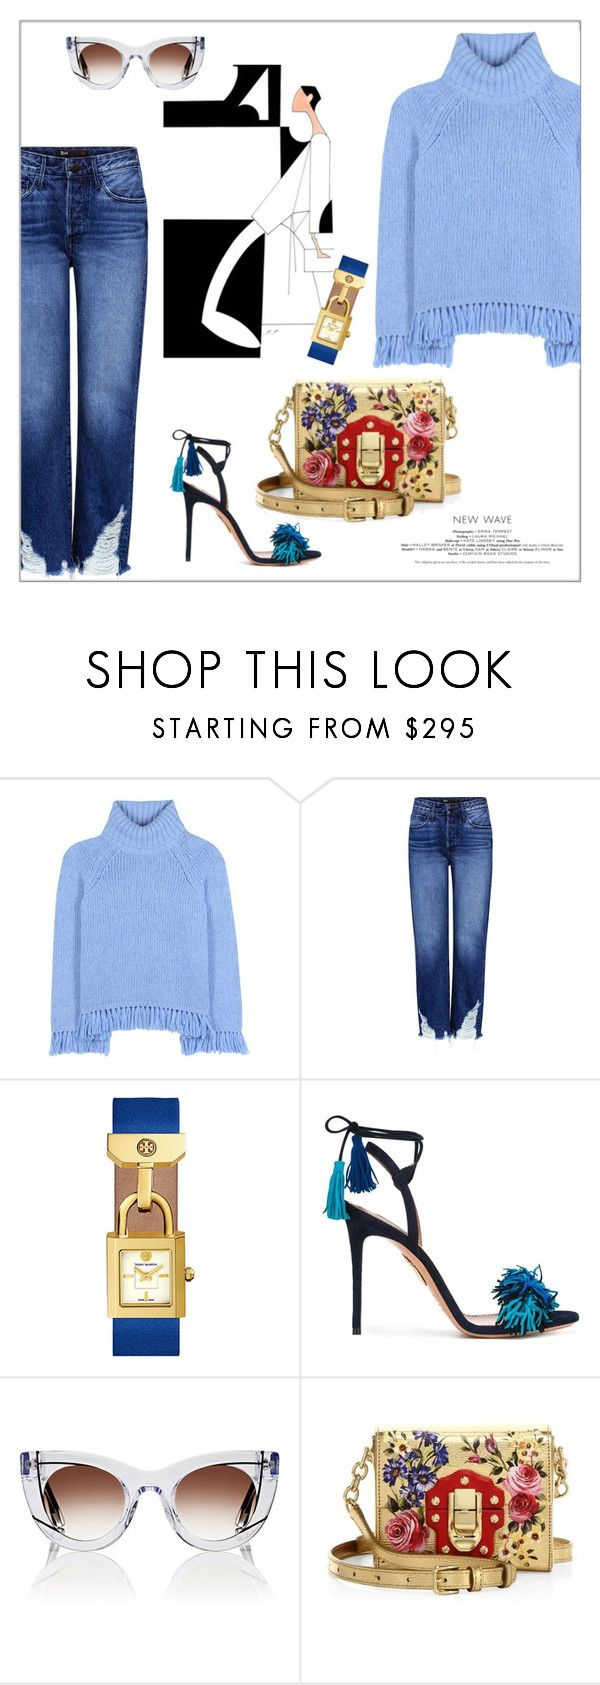 """Monday Blues"" by frenchfriesblackmg ❤ liked on Polyvore featuring Tory Burch, 3x1, Aquazzura, Thierry Lasry and Dolce&Gabbana"